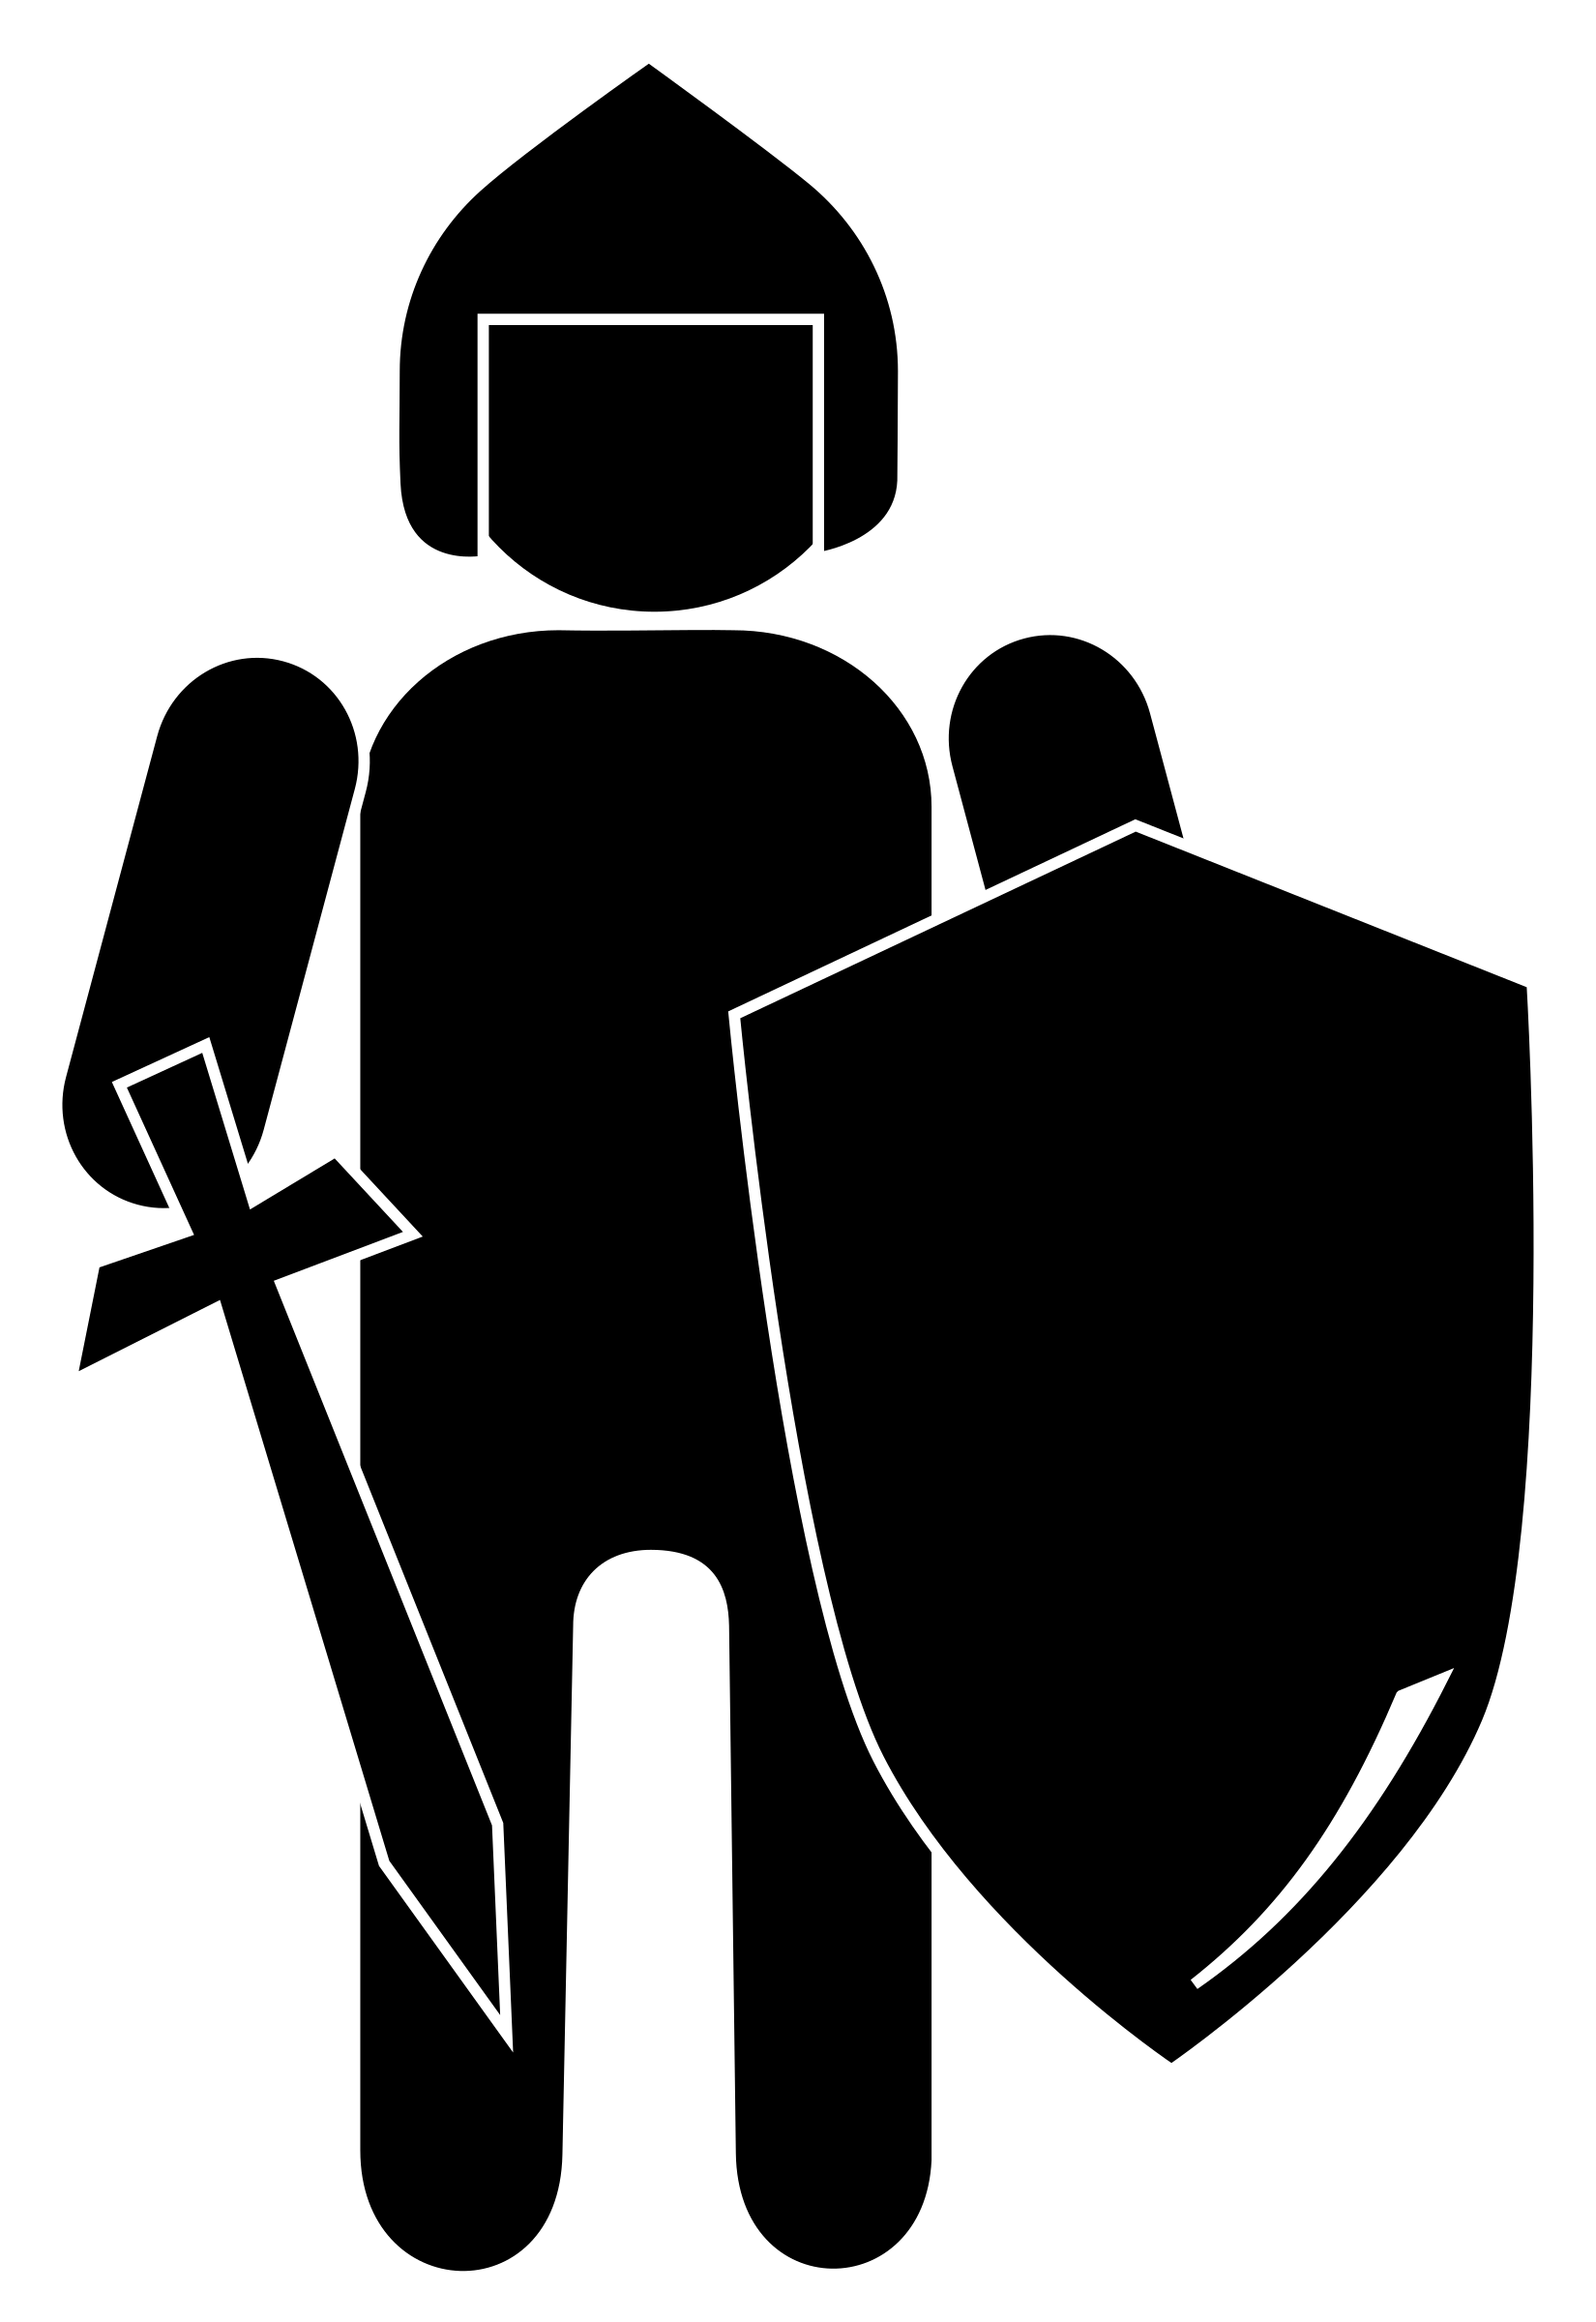 Knight clipart #1, Download drawings